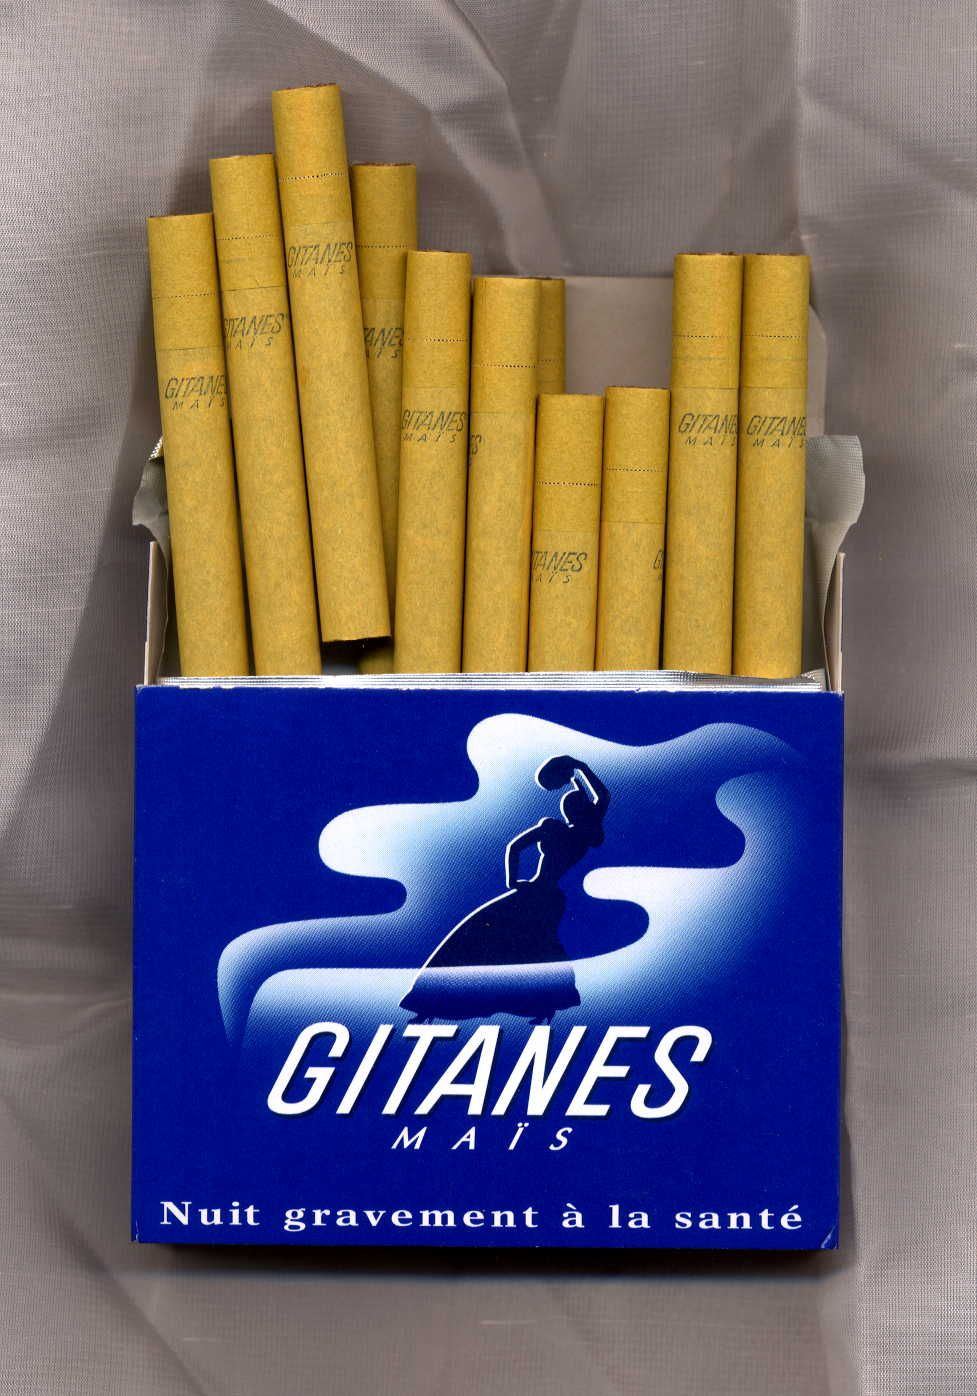 Carton of Parliament cigarettes